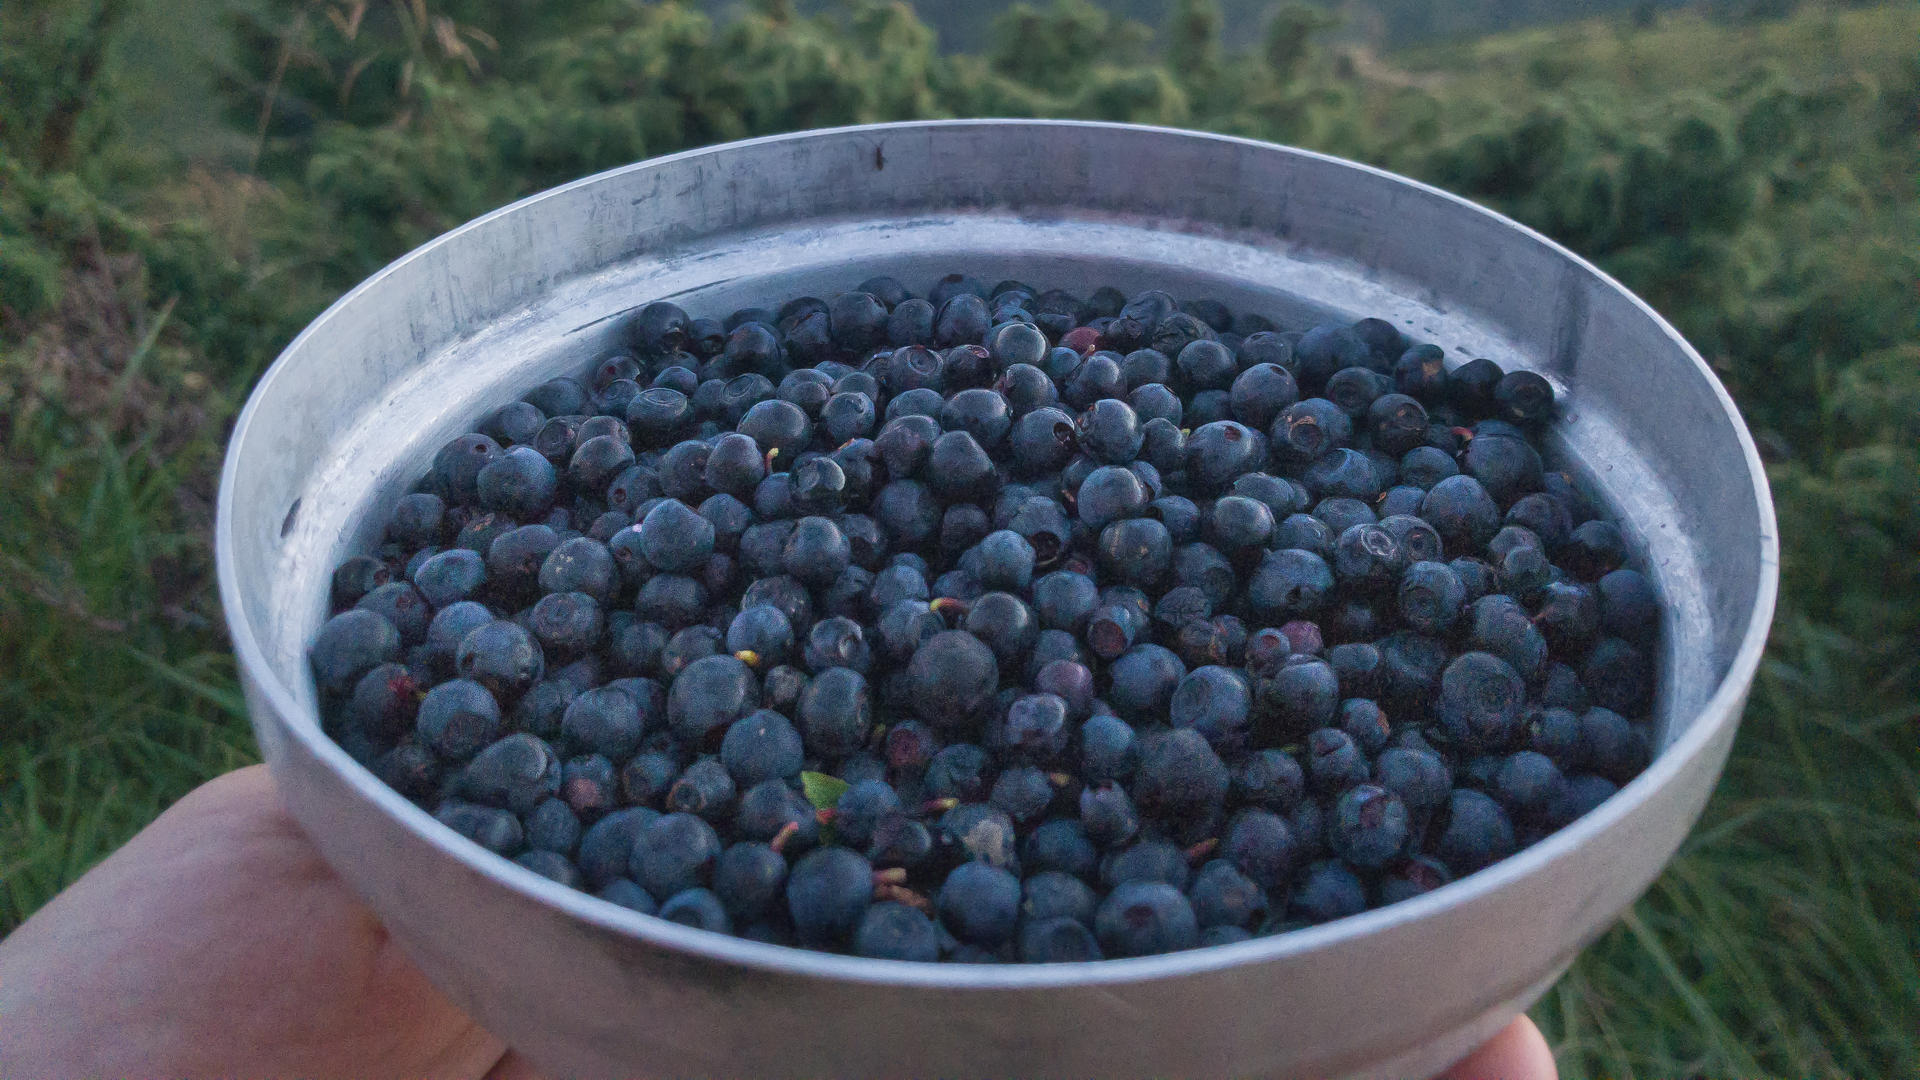 blueberries, bluebbery carpathians, blueberries svidovec